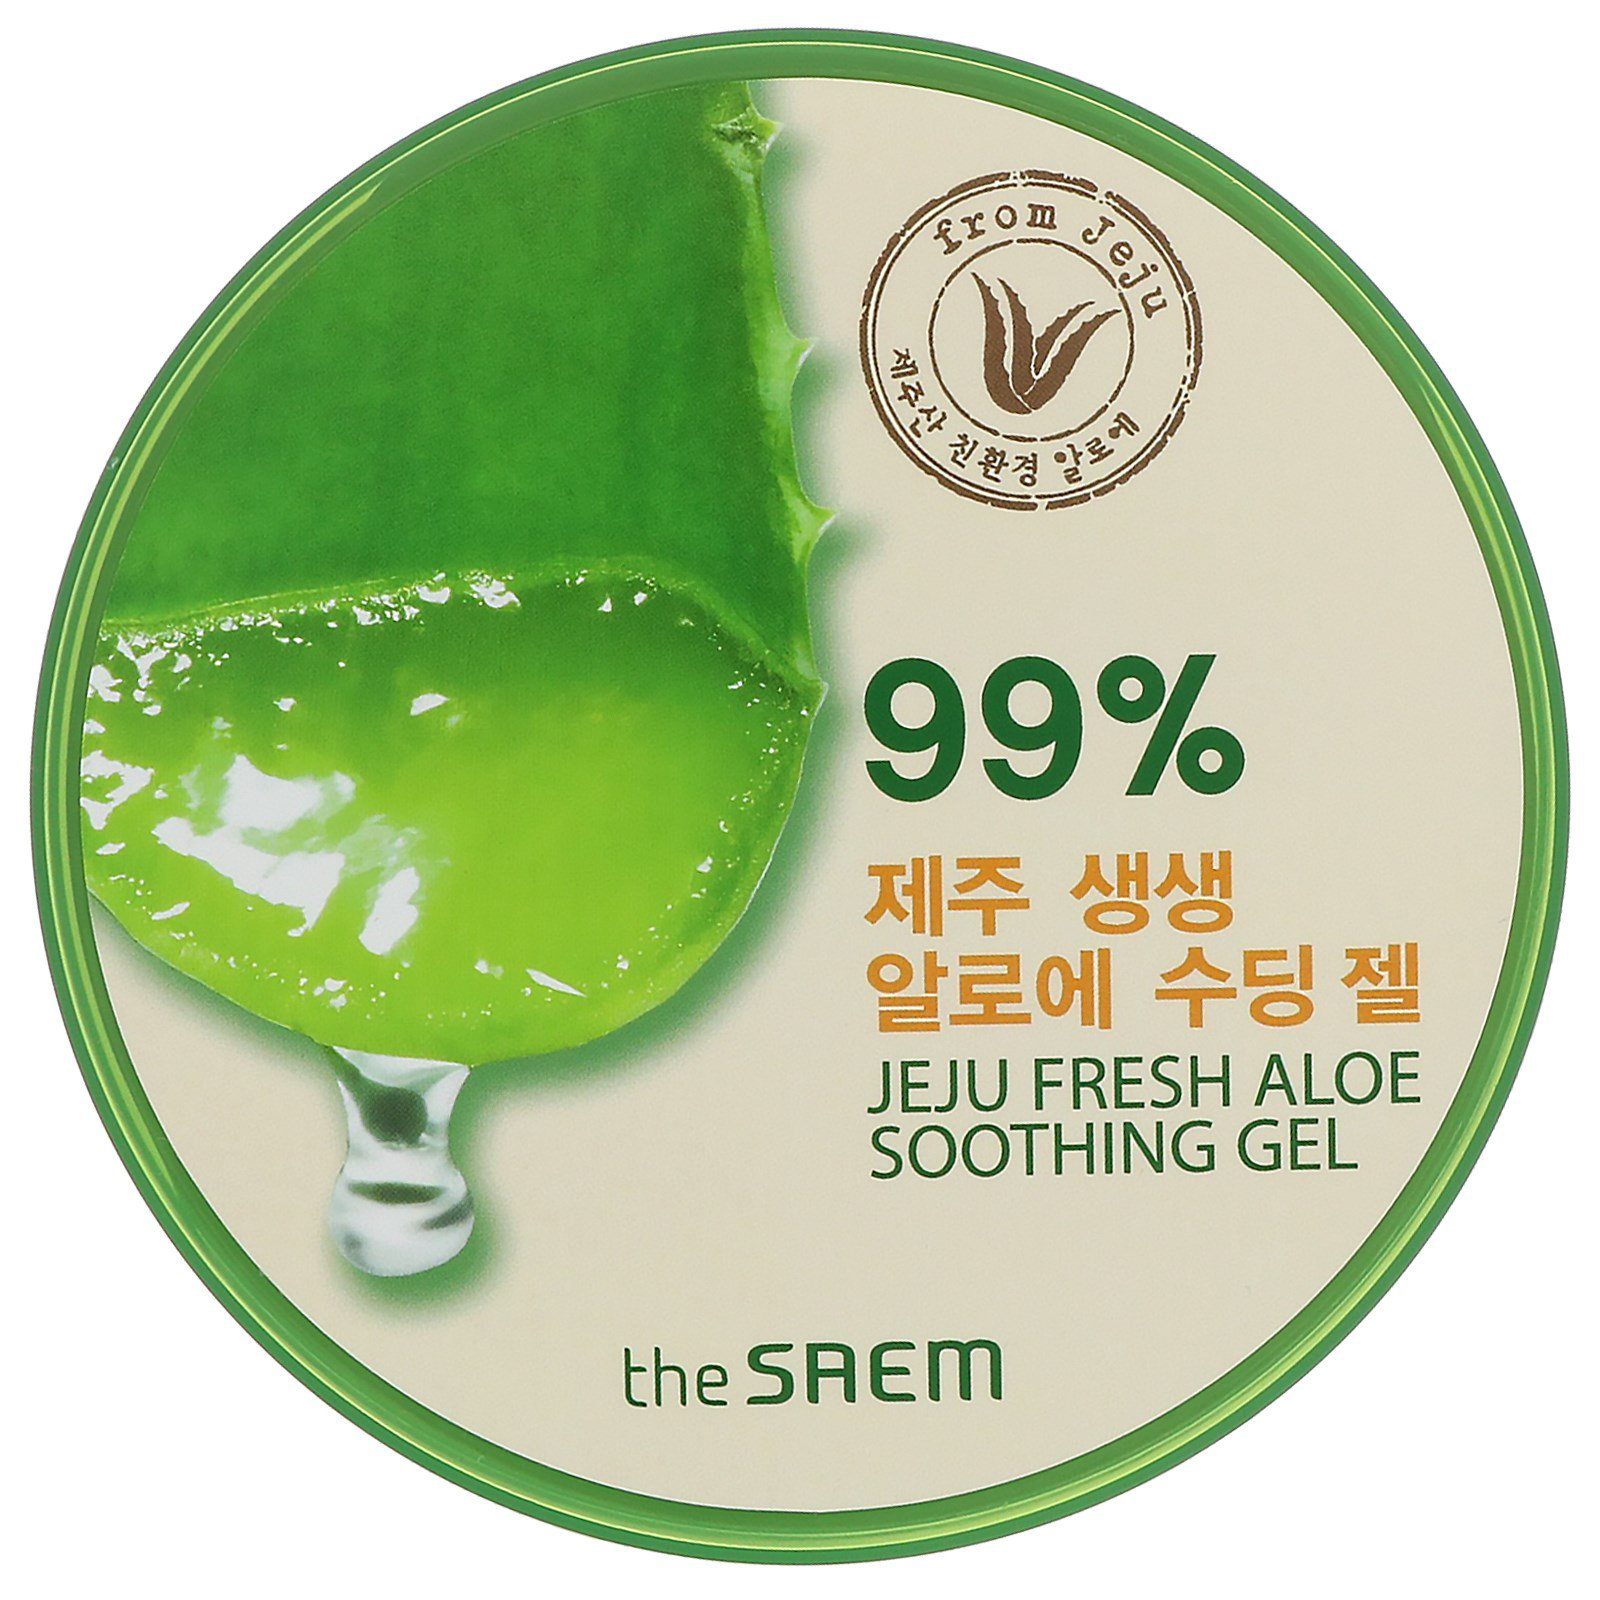 https://ru.iherb.com/pr/The-Saem-Jeju-Fresh-Aloe-Soothing-Gel-10-14-fl-oz-300-ml/78222?rcode=KGR603&pcode=BBTEN